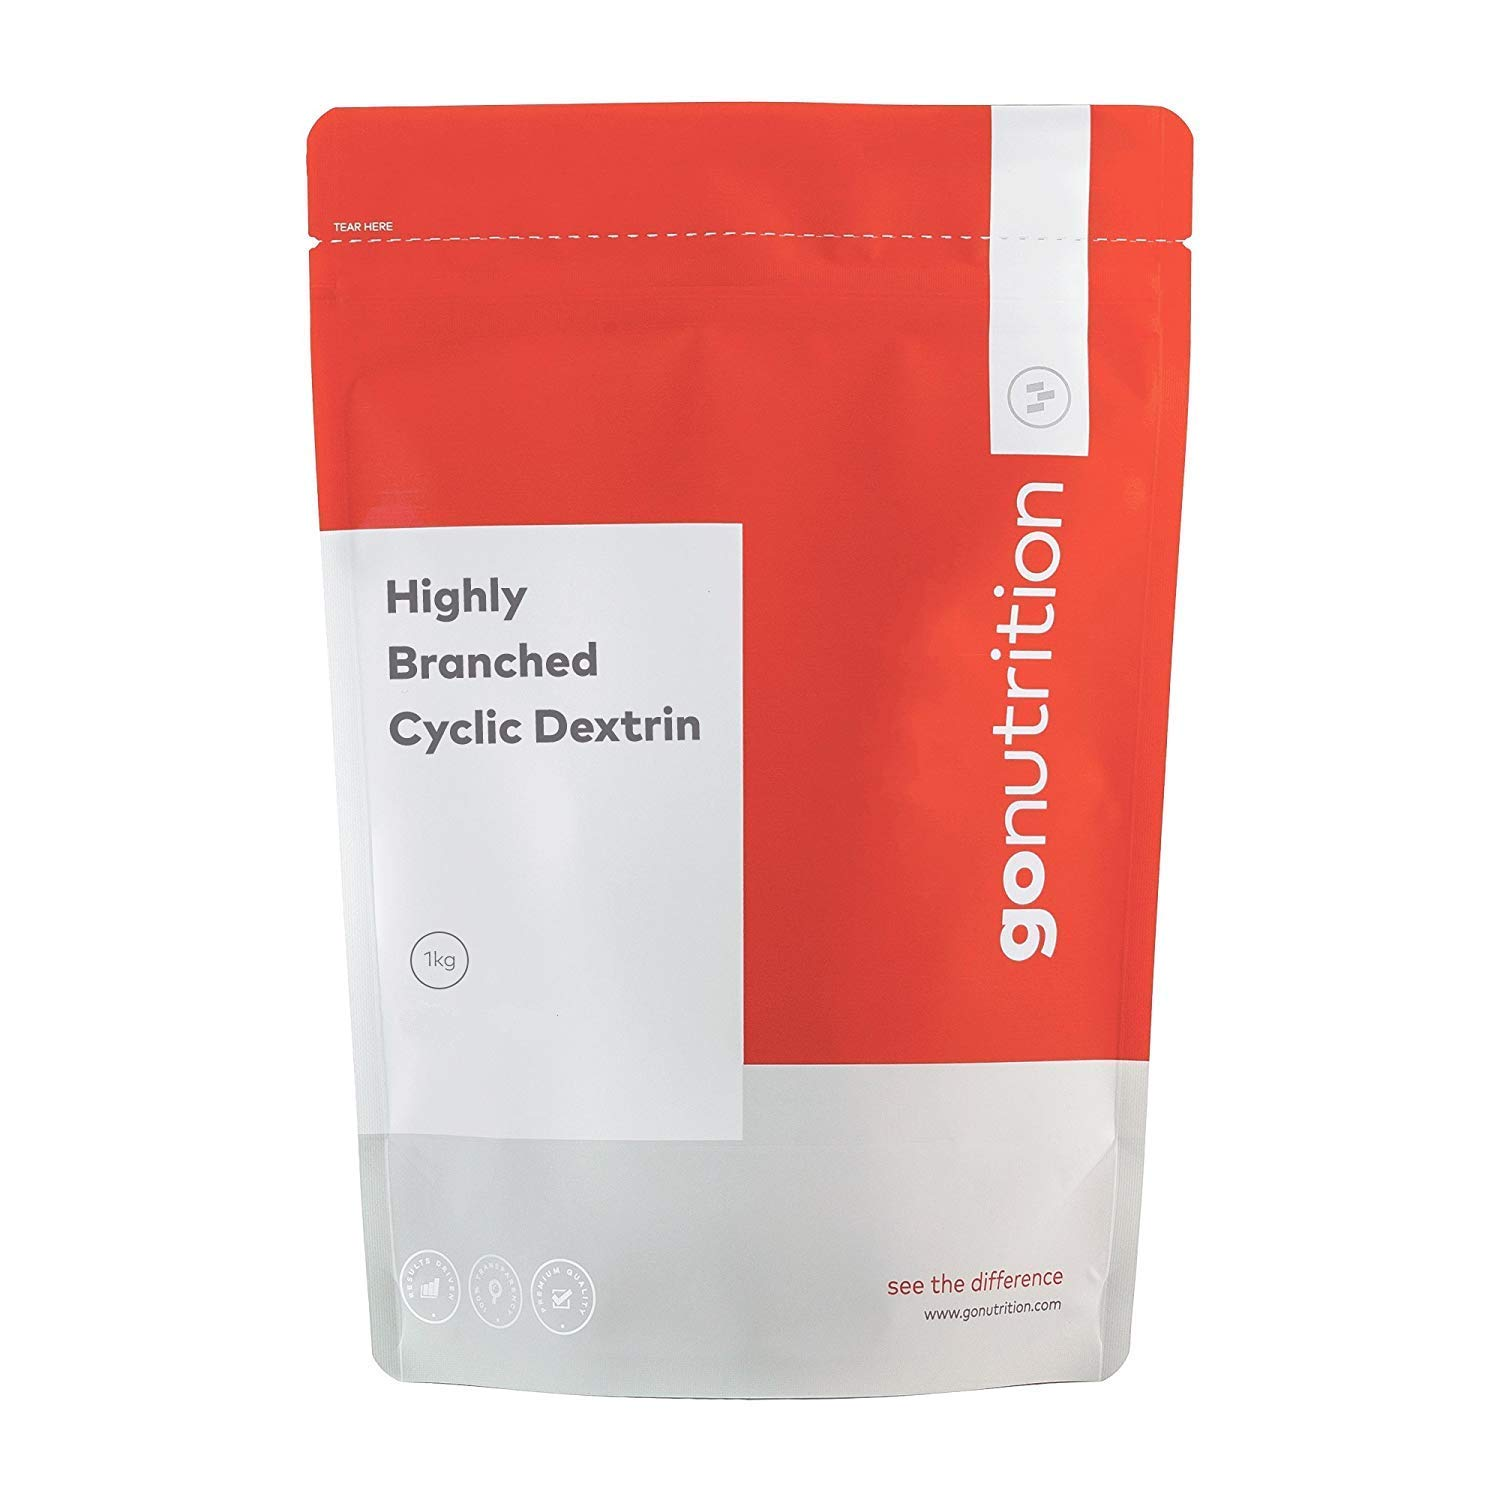 GoNutrition 1 kg Highly Branched Cyclic Dextrin